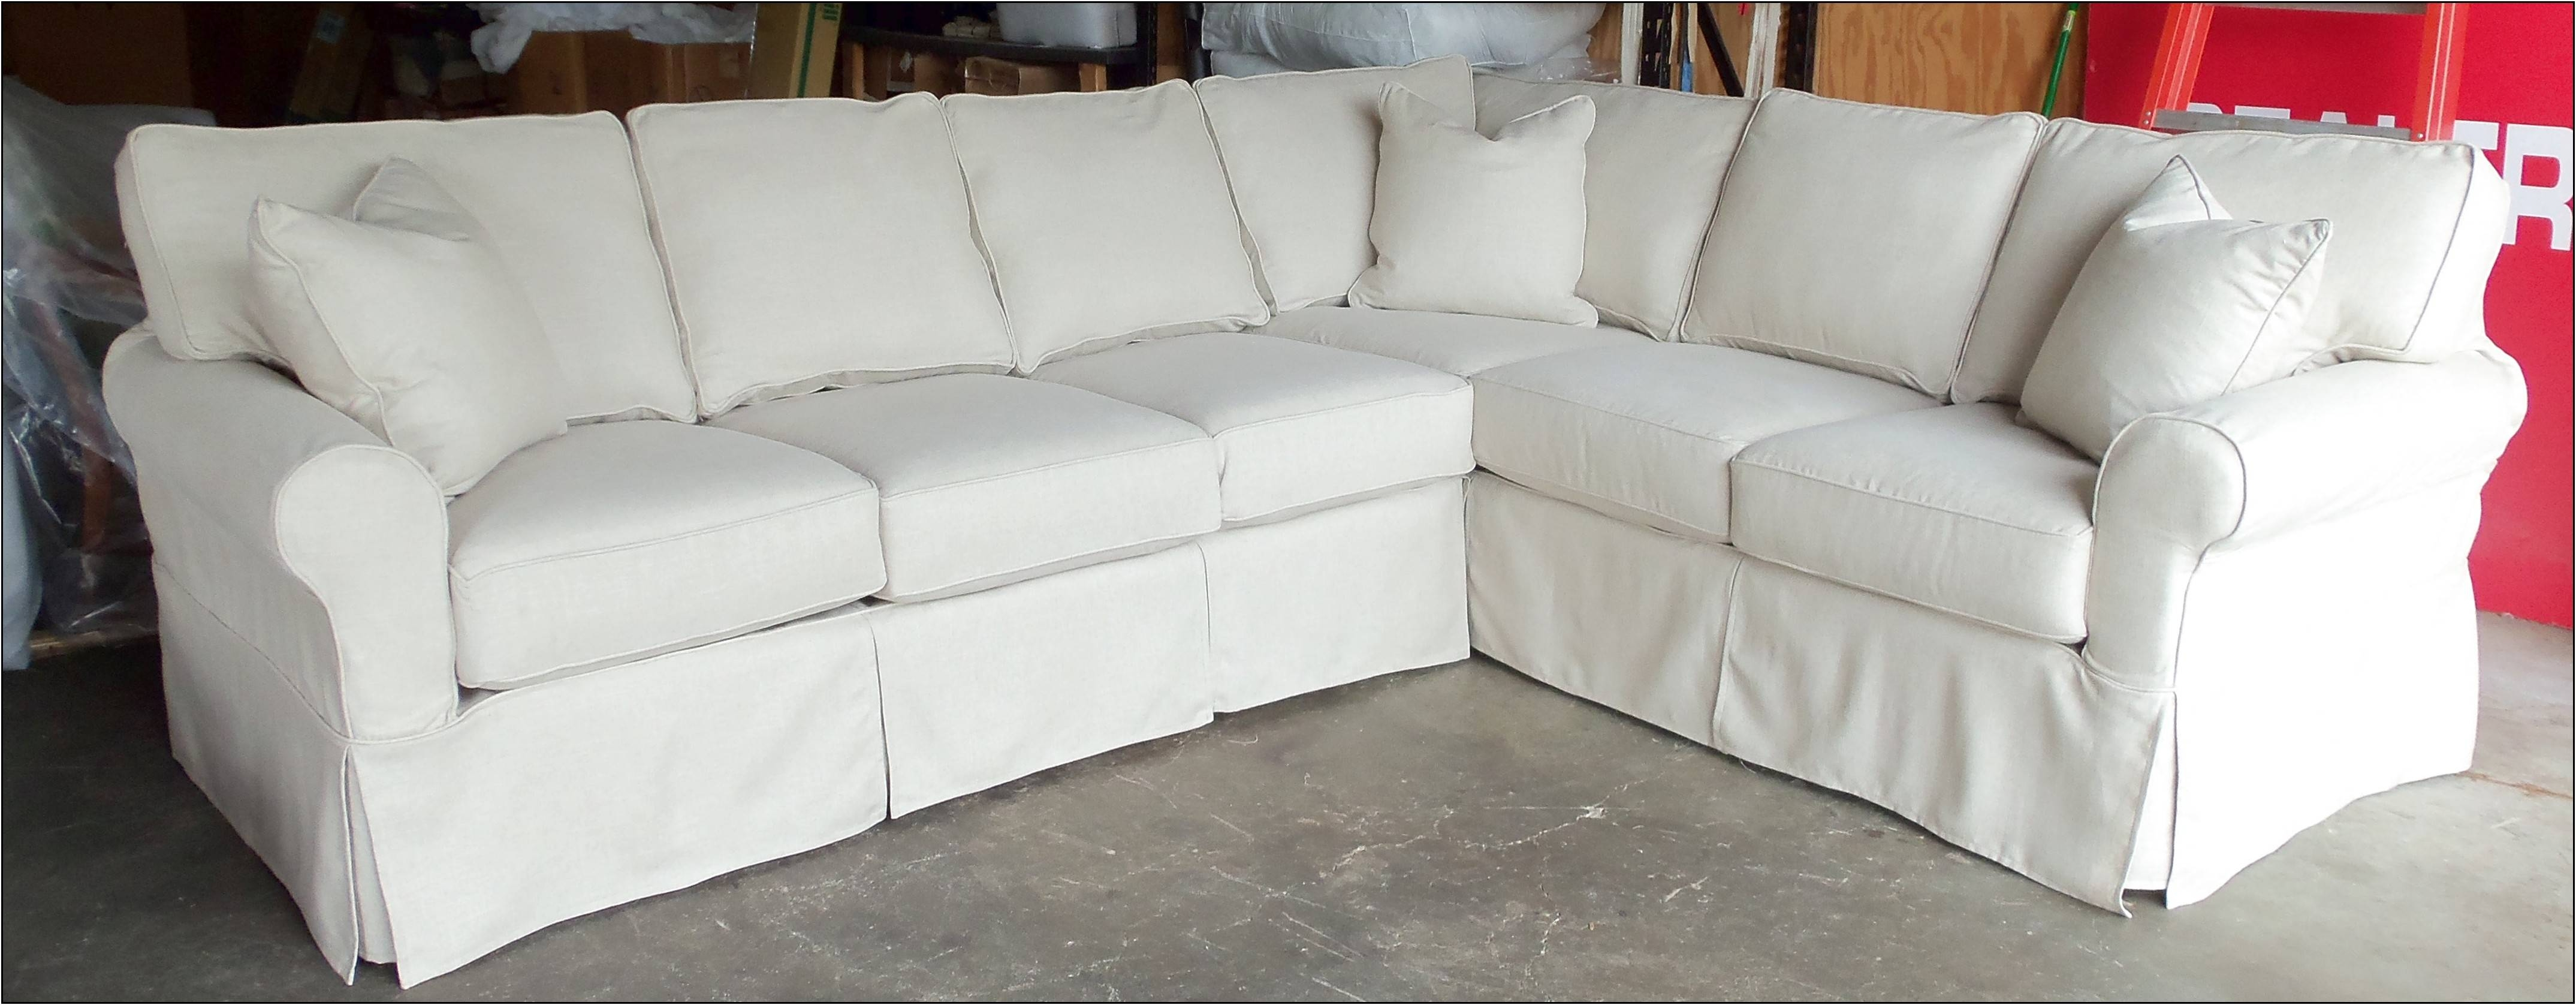 Furniture: Couch Covers At Walmart To Make Your Furniture Stylish Within Slipcovers For Sofas And Chairs (View 14 of 30)